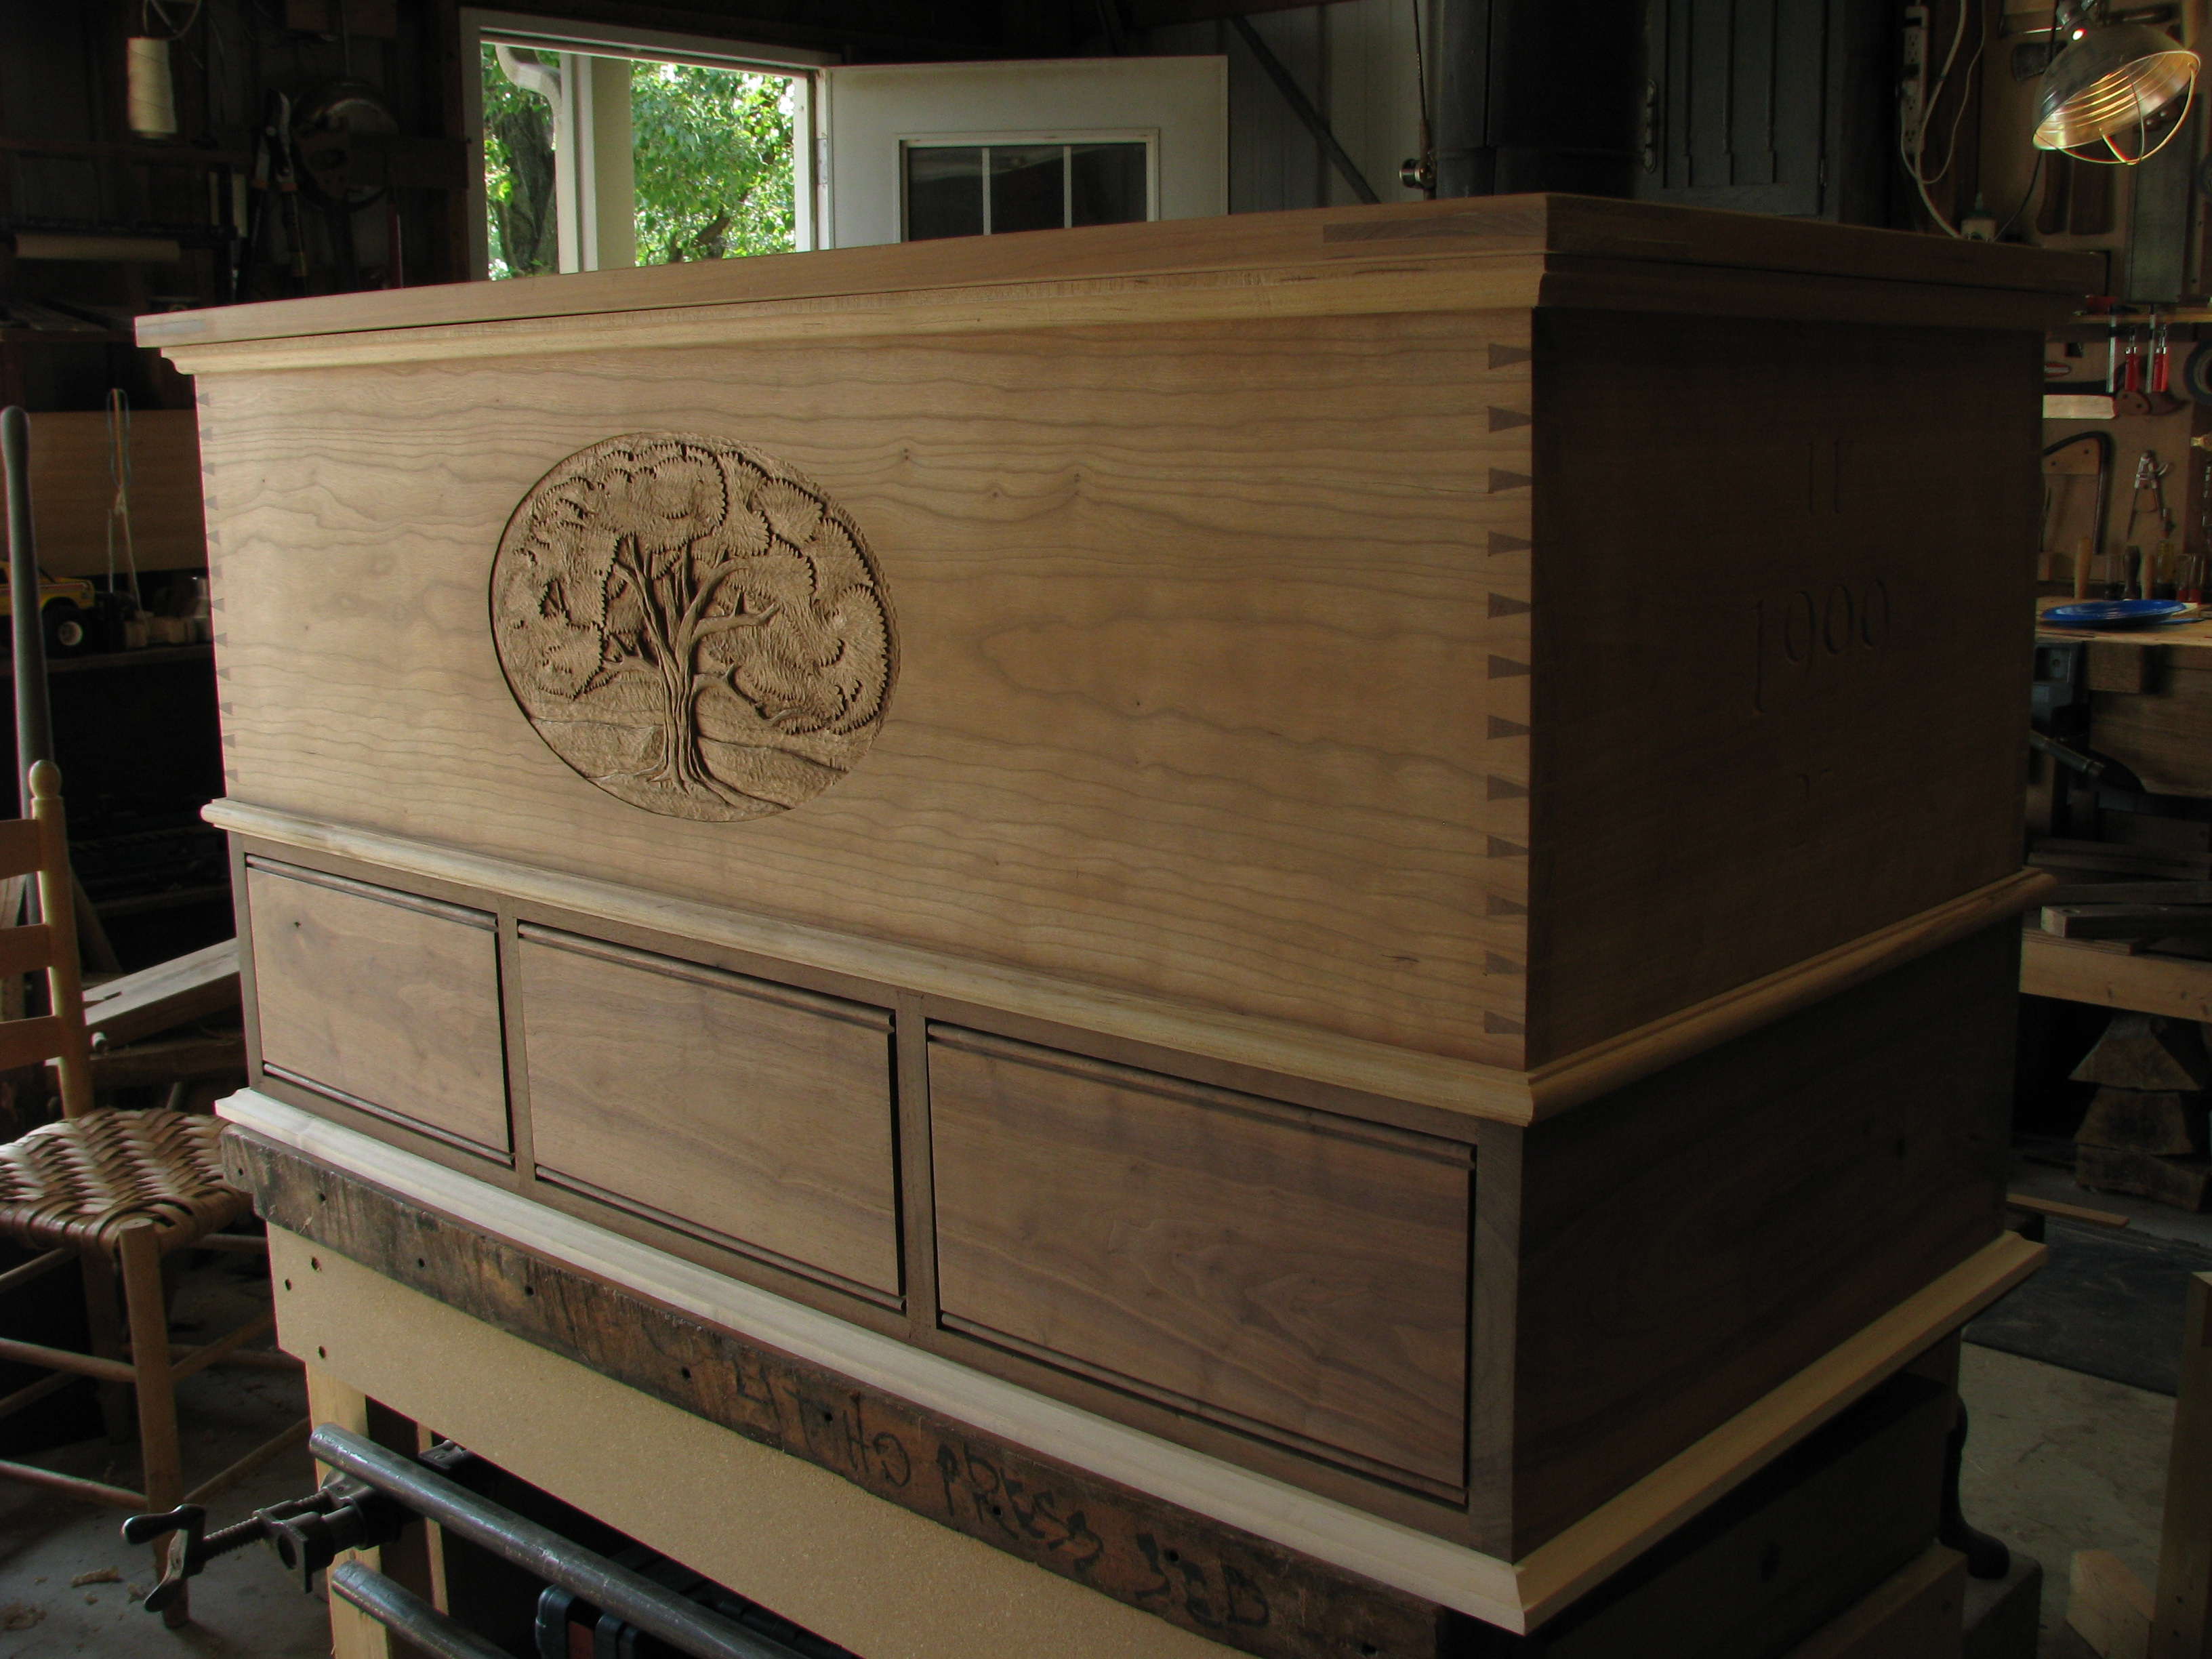 Category: Woodwork Tagged: Blanket Chest, Cherry Wood, Custom Furniture,  Dovetailed Chest, Hope Chest, Walnut